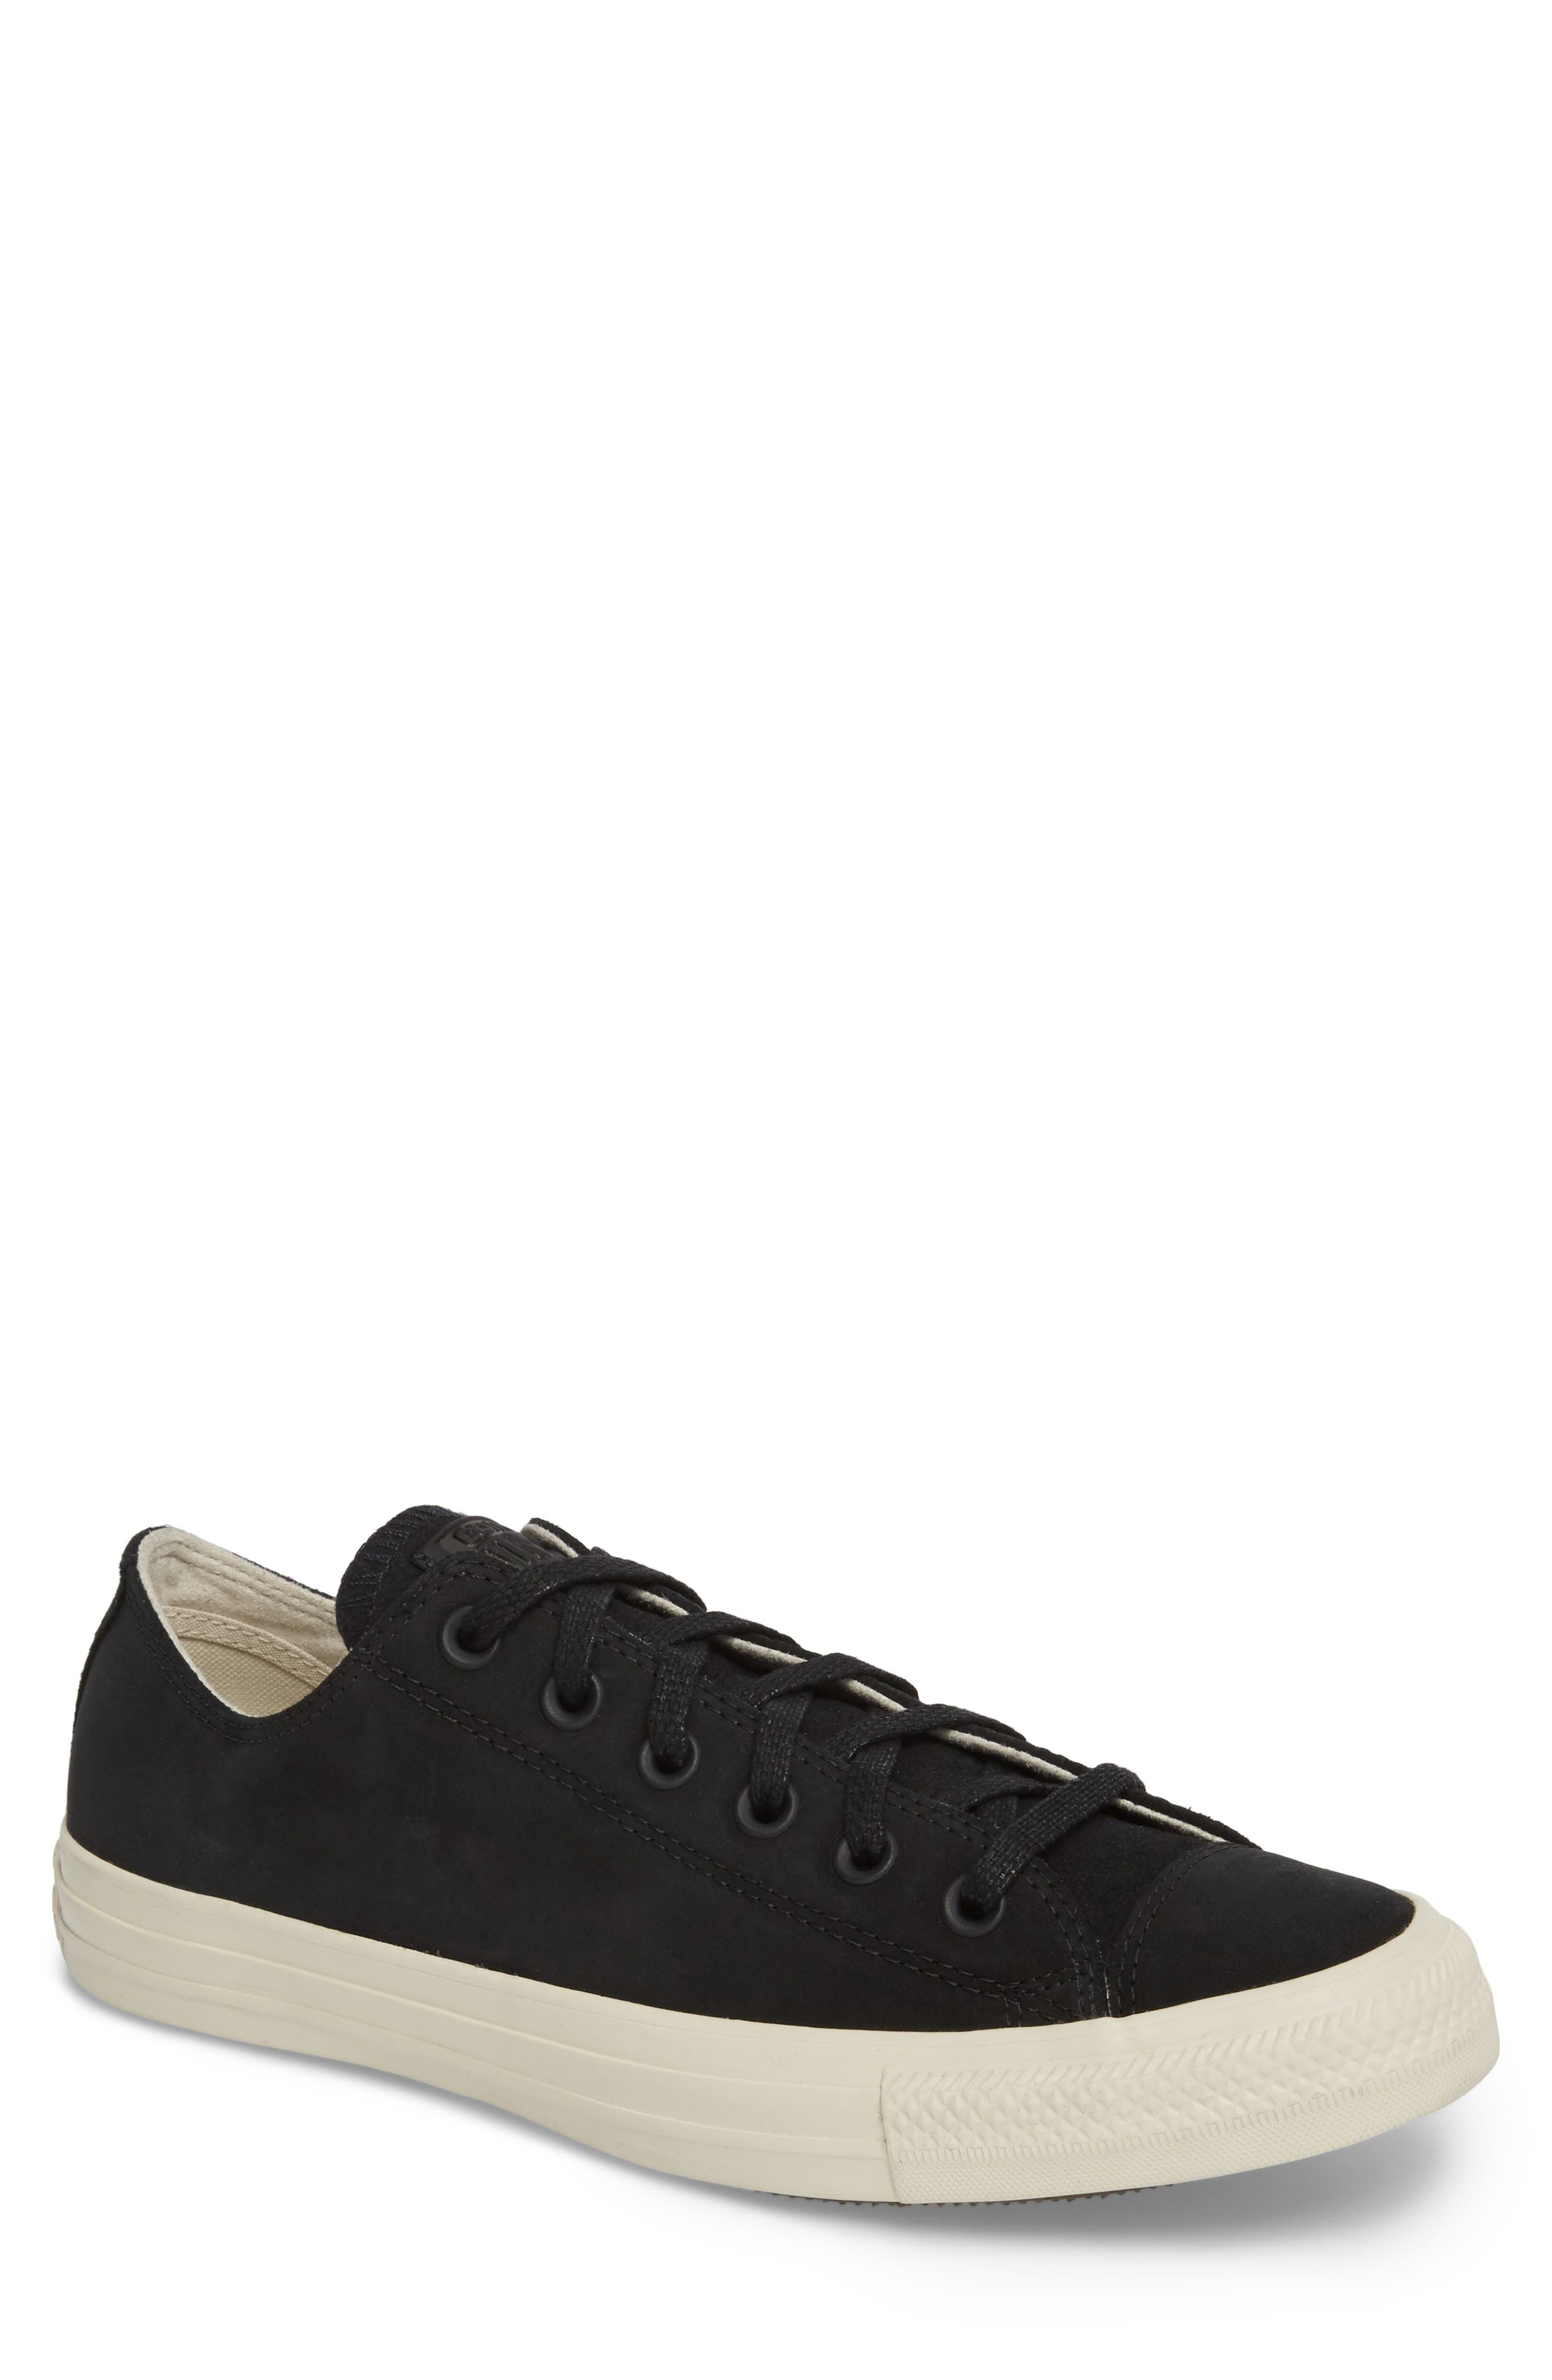 Chuck Taylor<sup>®</sup> All Star<sup>®</sup> Low Top Sneaker,                         Main,                         color, Black Leather